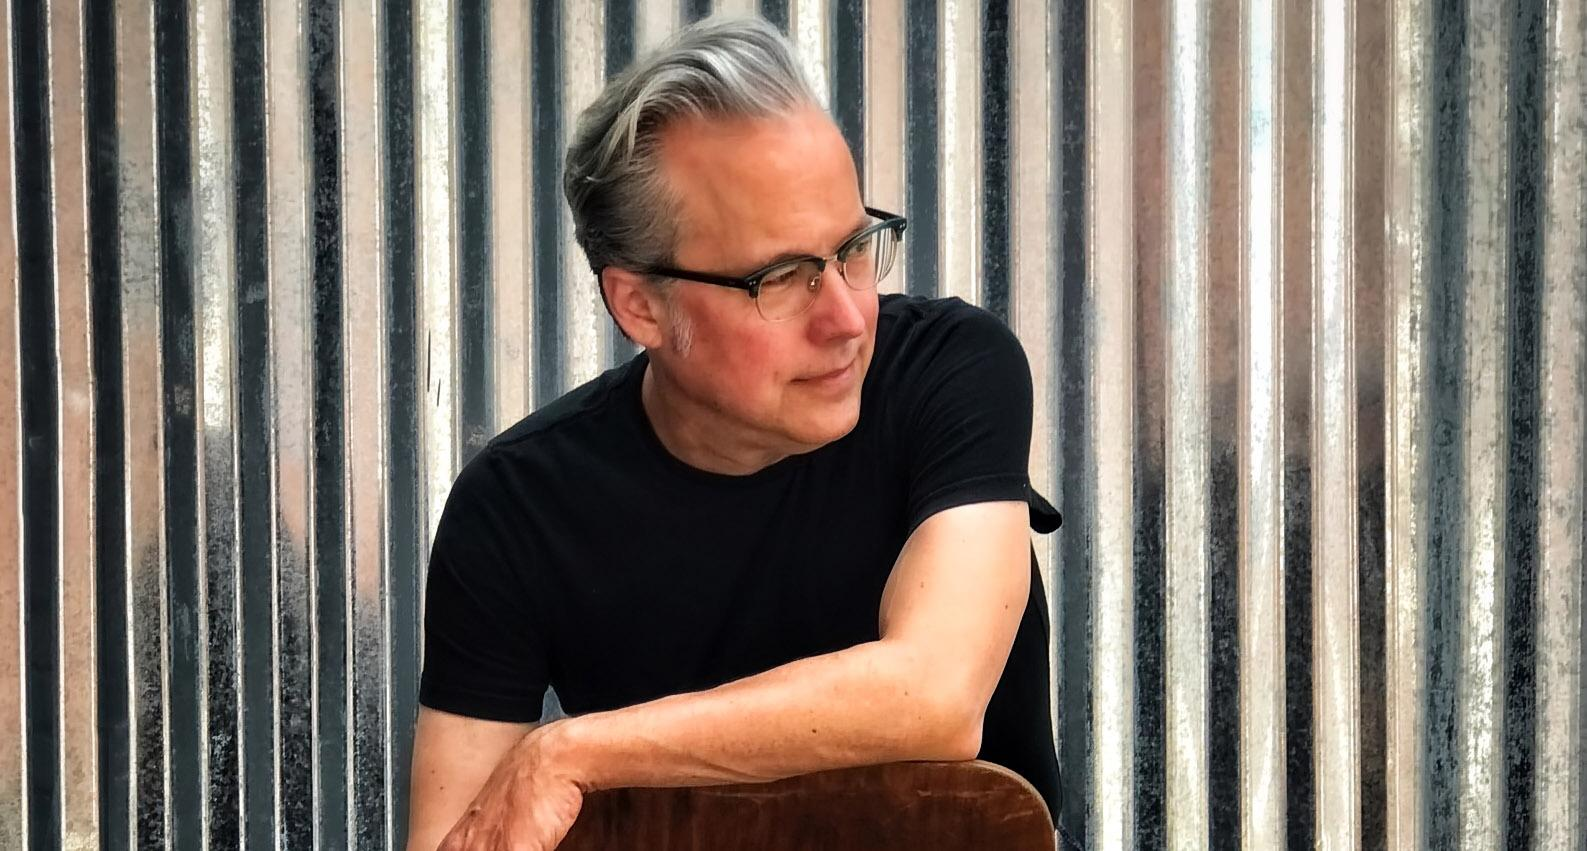 [RESCHEDULED] Radney Foster